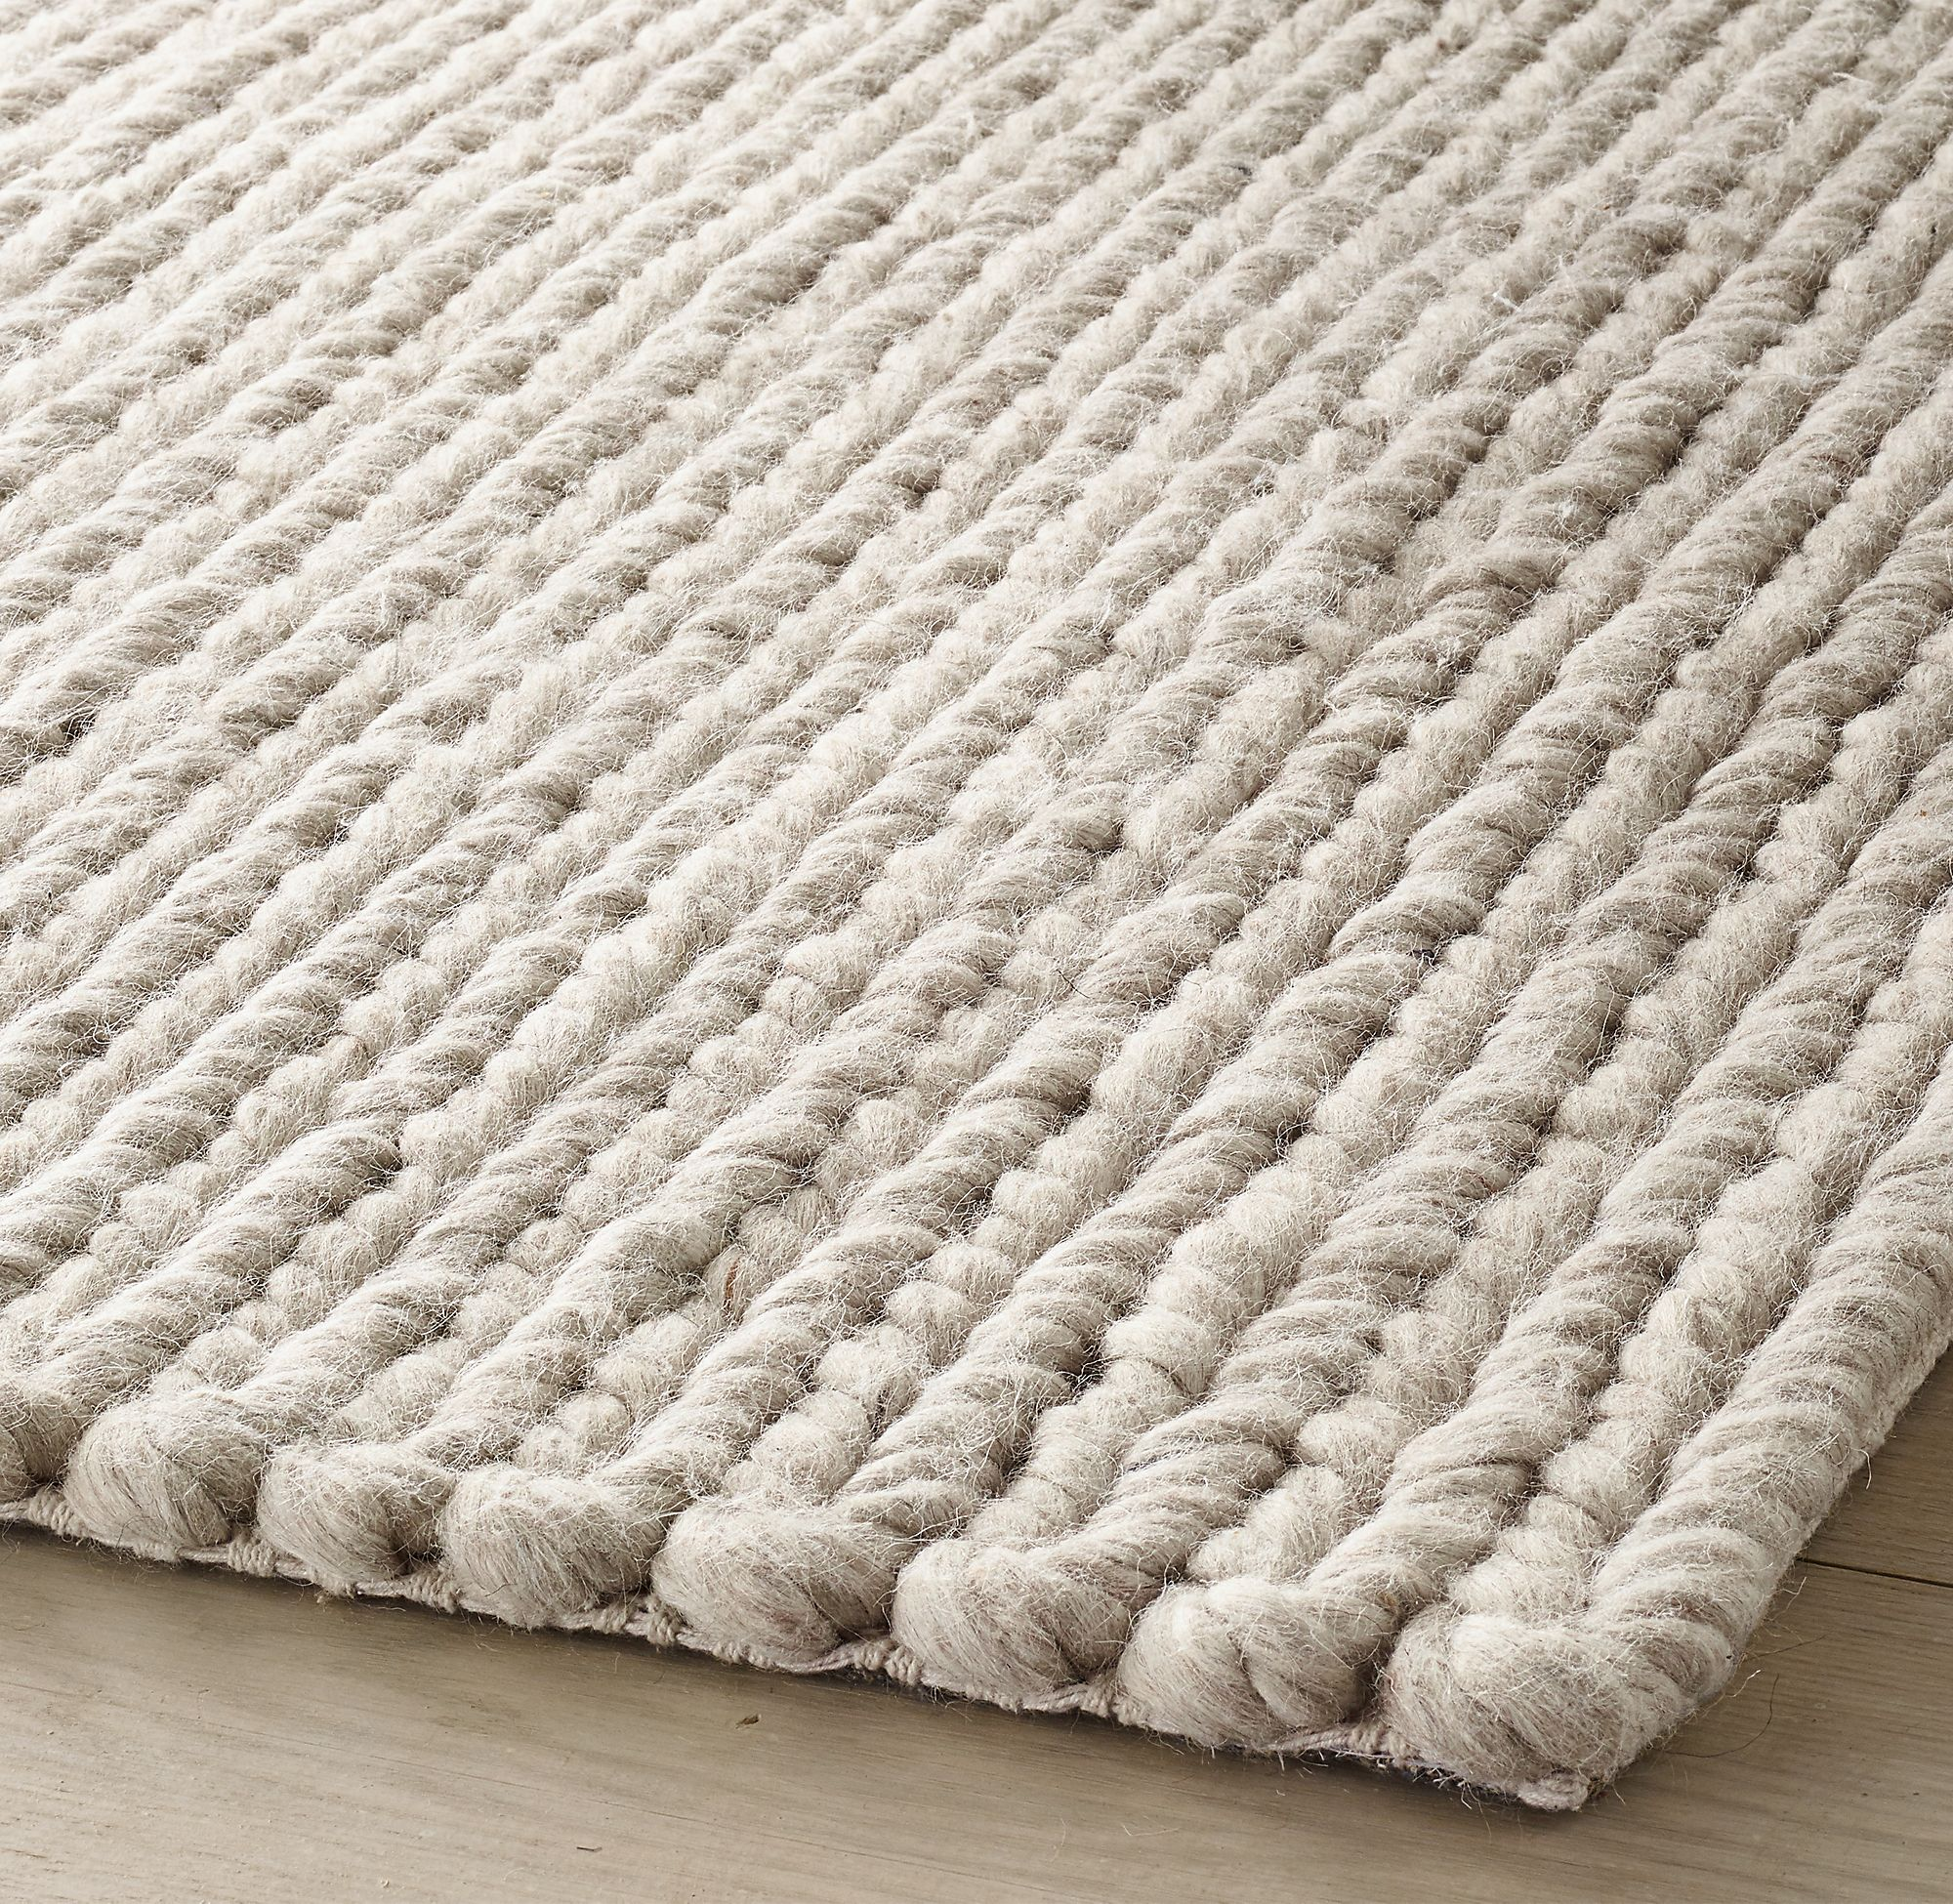 Pin By Amy Balser On Bedroom In 2020 Braided Wool Rug Modern Wool Rugs Wool Rugs Living Room #wool #rugs #for #living #room